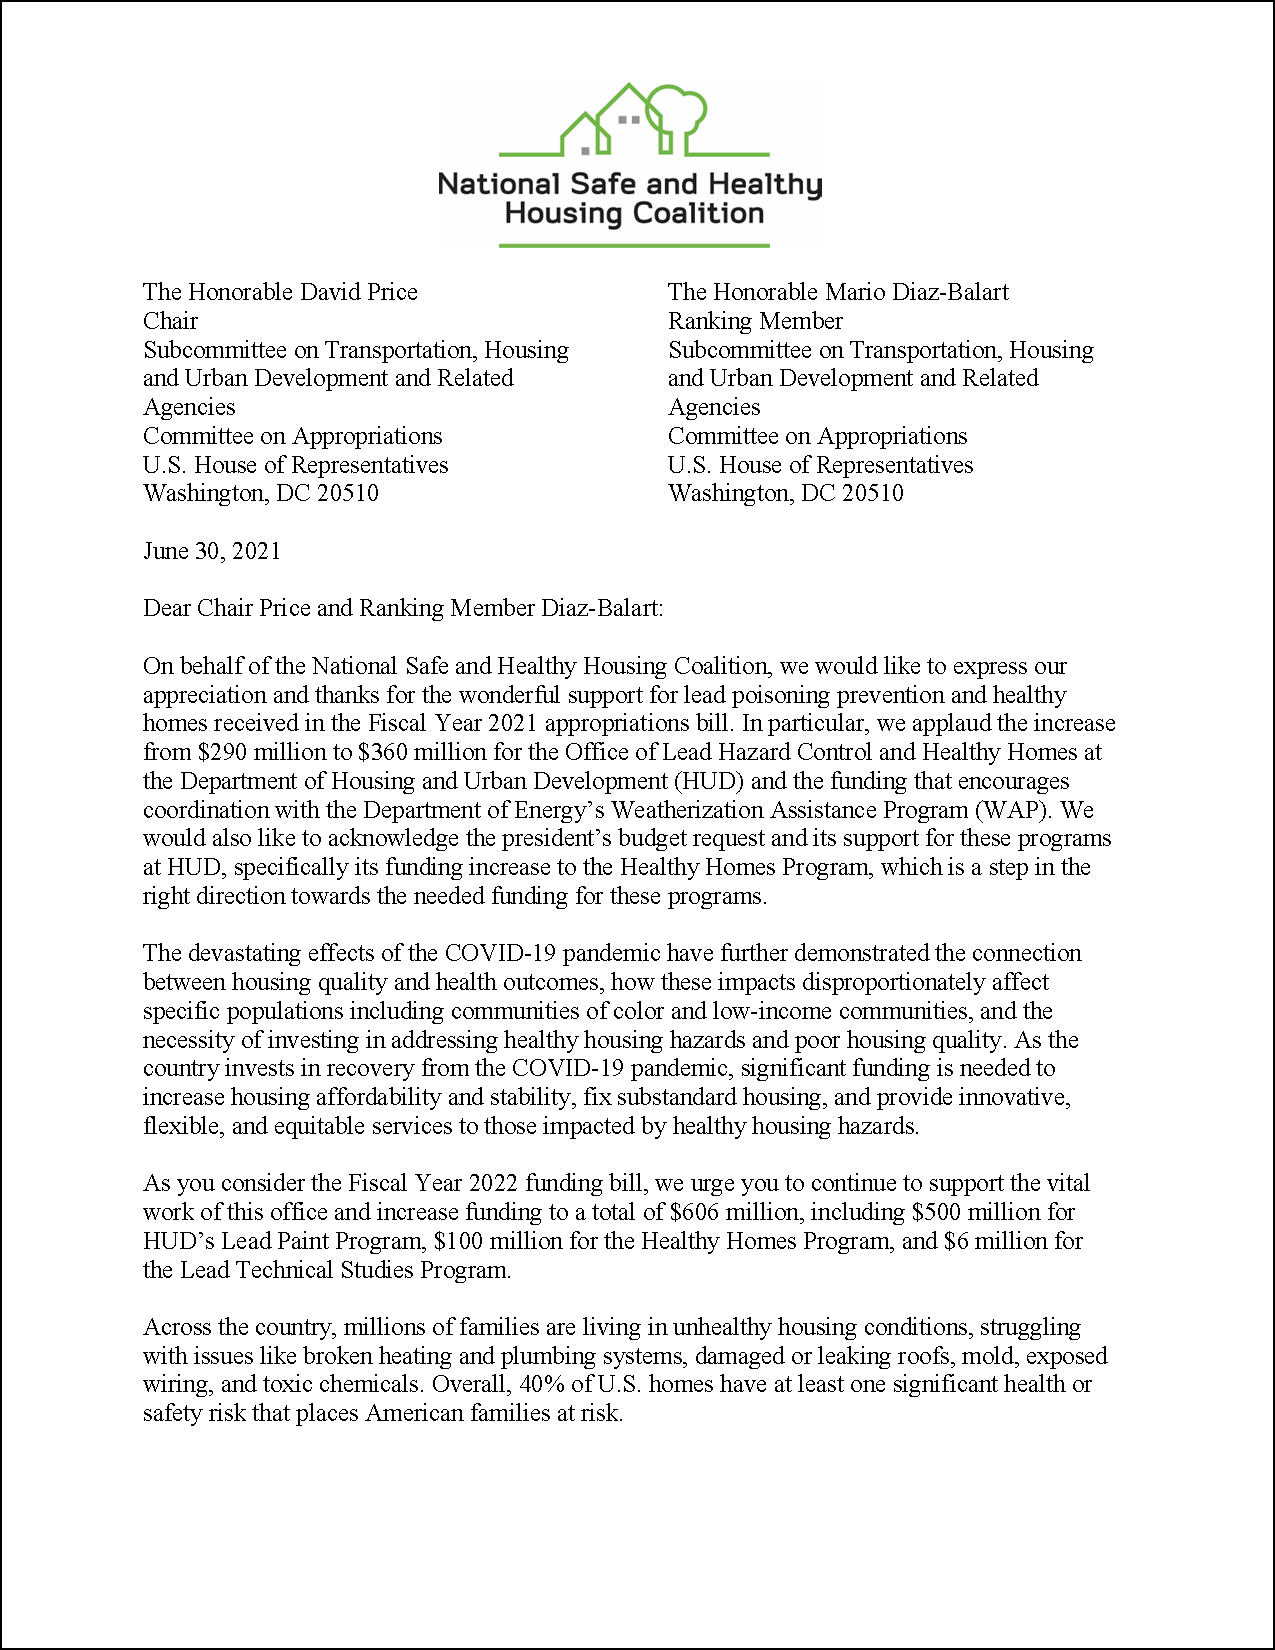 http://nchh.org/resource-library/letter_2021.06.30_fy22-appropriations-to-us-house_hud-programs_nshhc.pdf